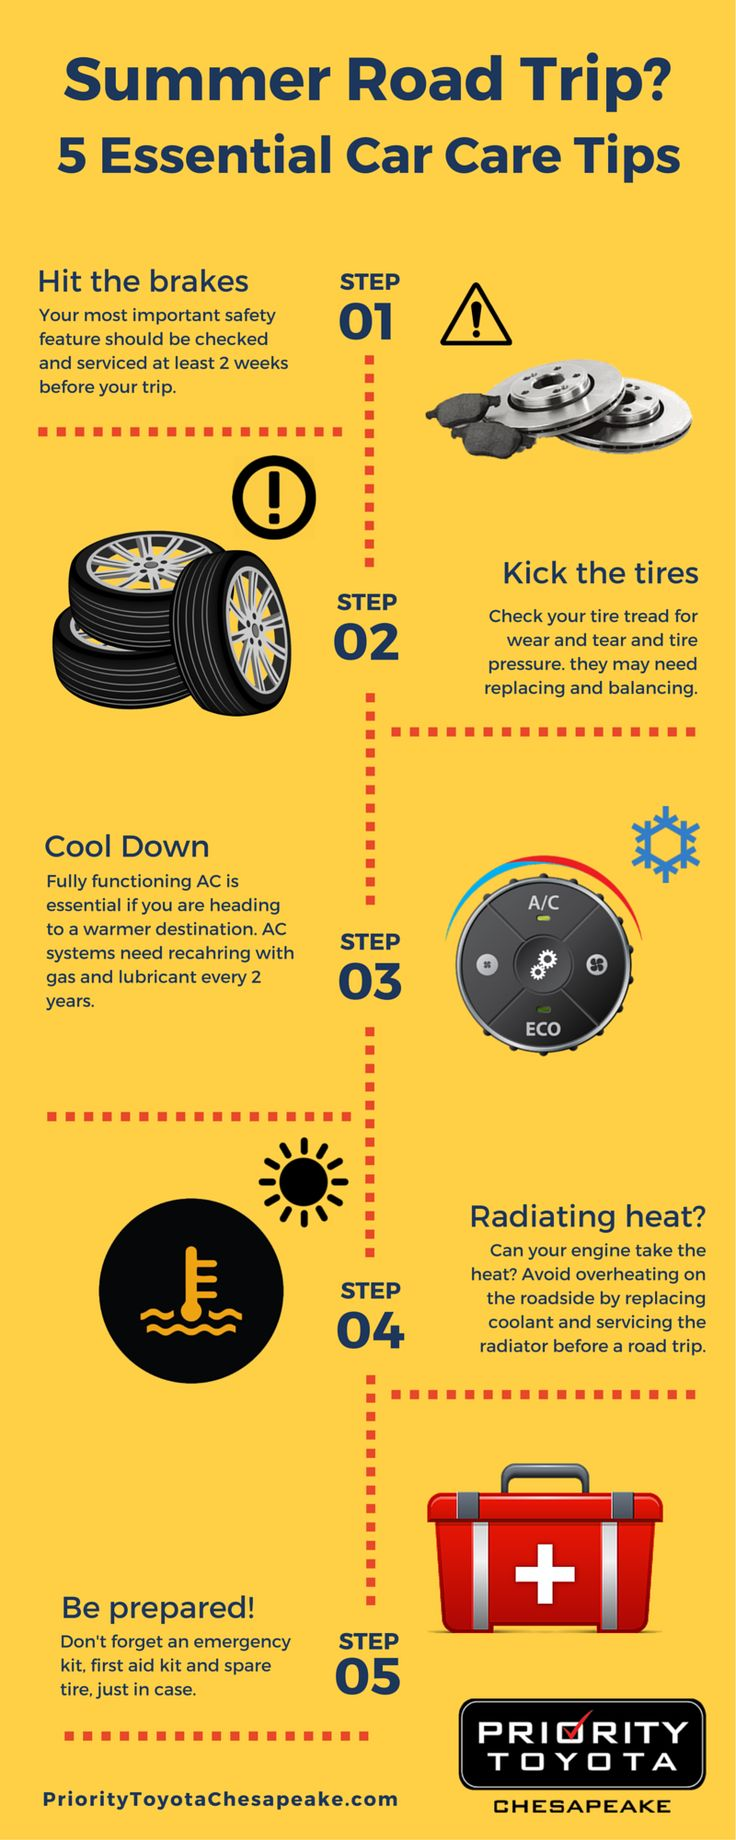 Now that summer is in full swing make sure you have your vehicle ready for any summer road trip that comes you way with